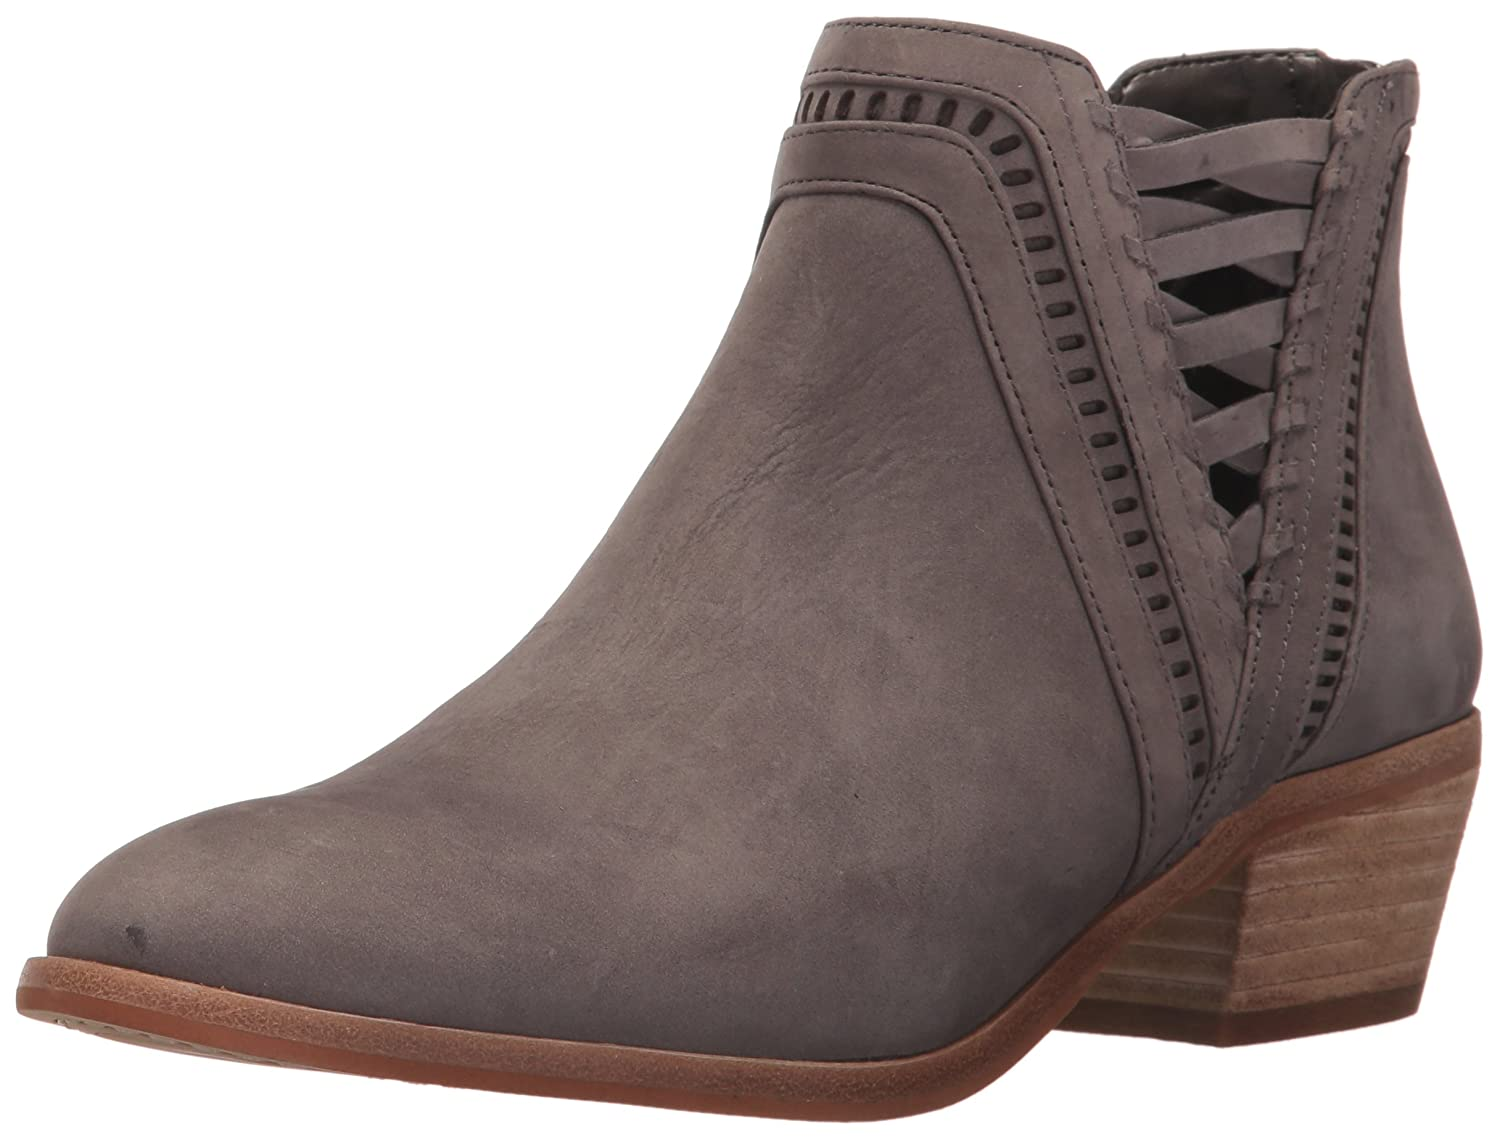 Vince Camuto Women's Pimmy Ankle Boot B071ZF7L6B 7 B(M) US|Gray Stone